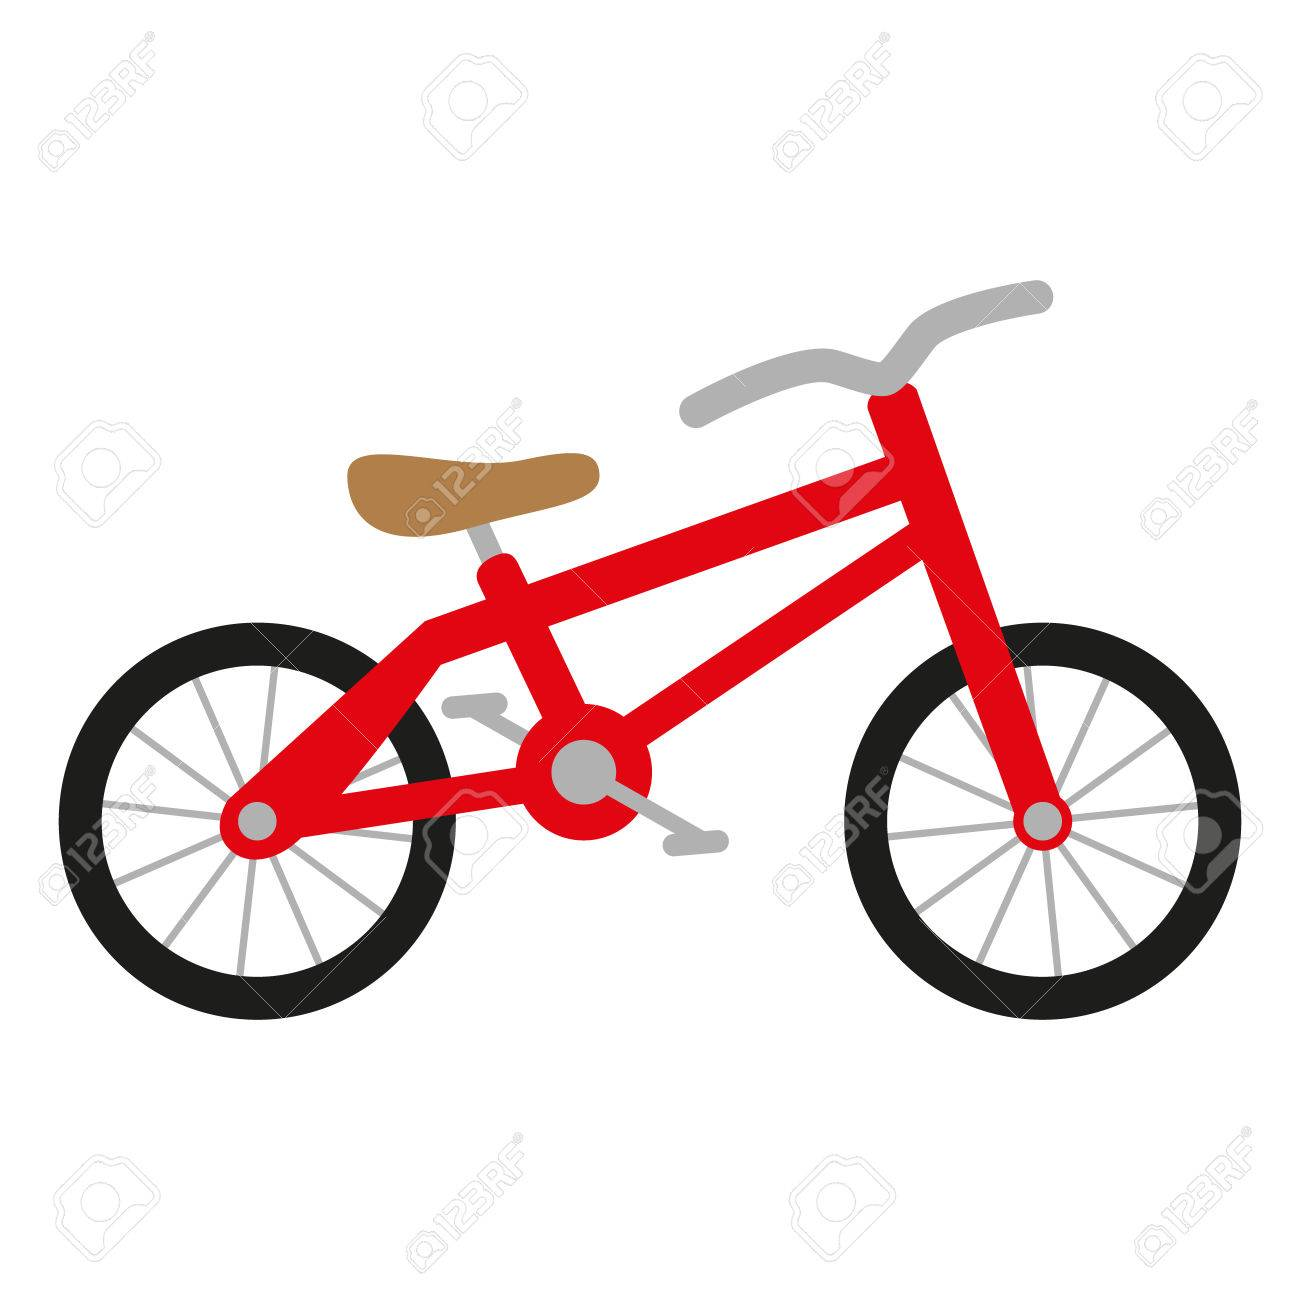 Red Bike With Wheels Seat And Handlebar Royalty Free Cliparts